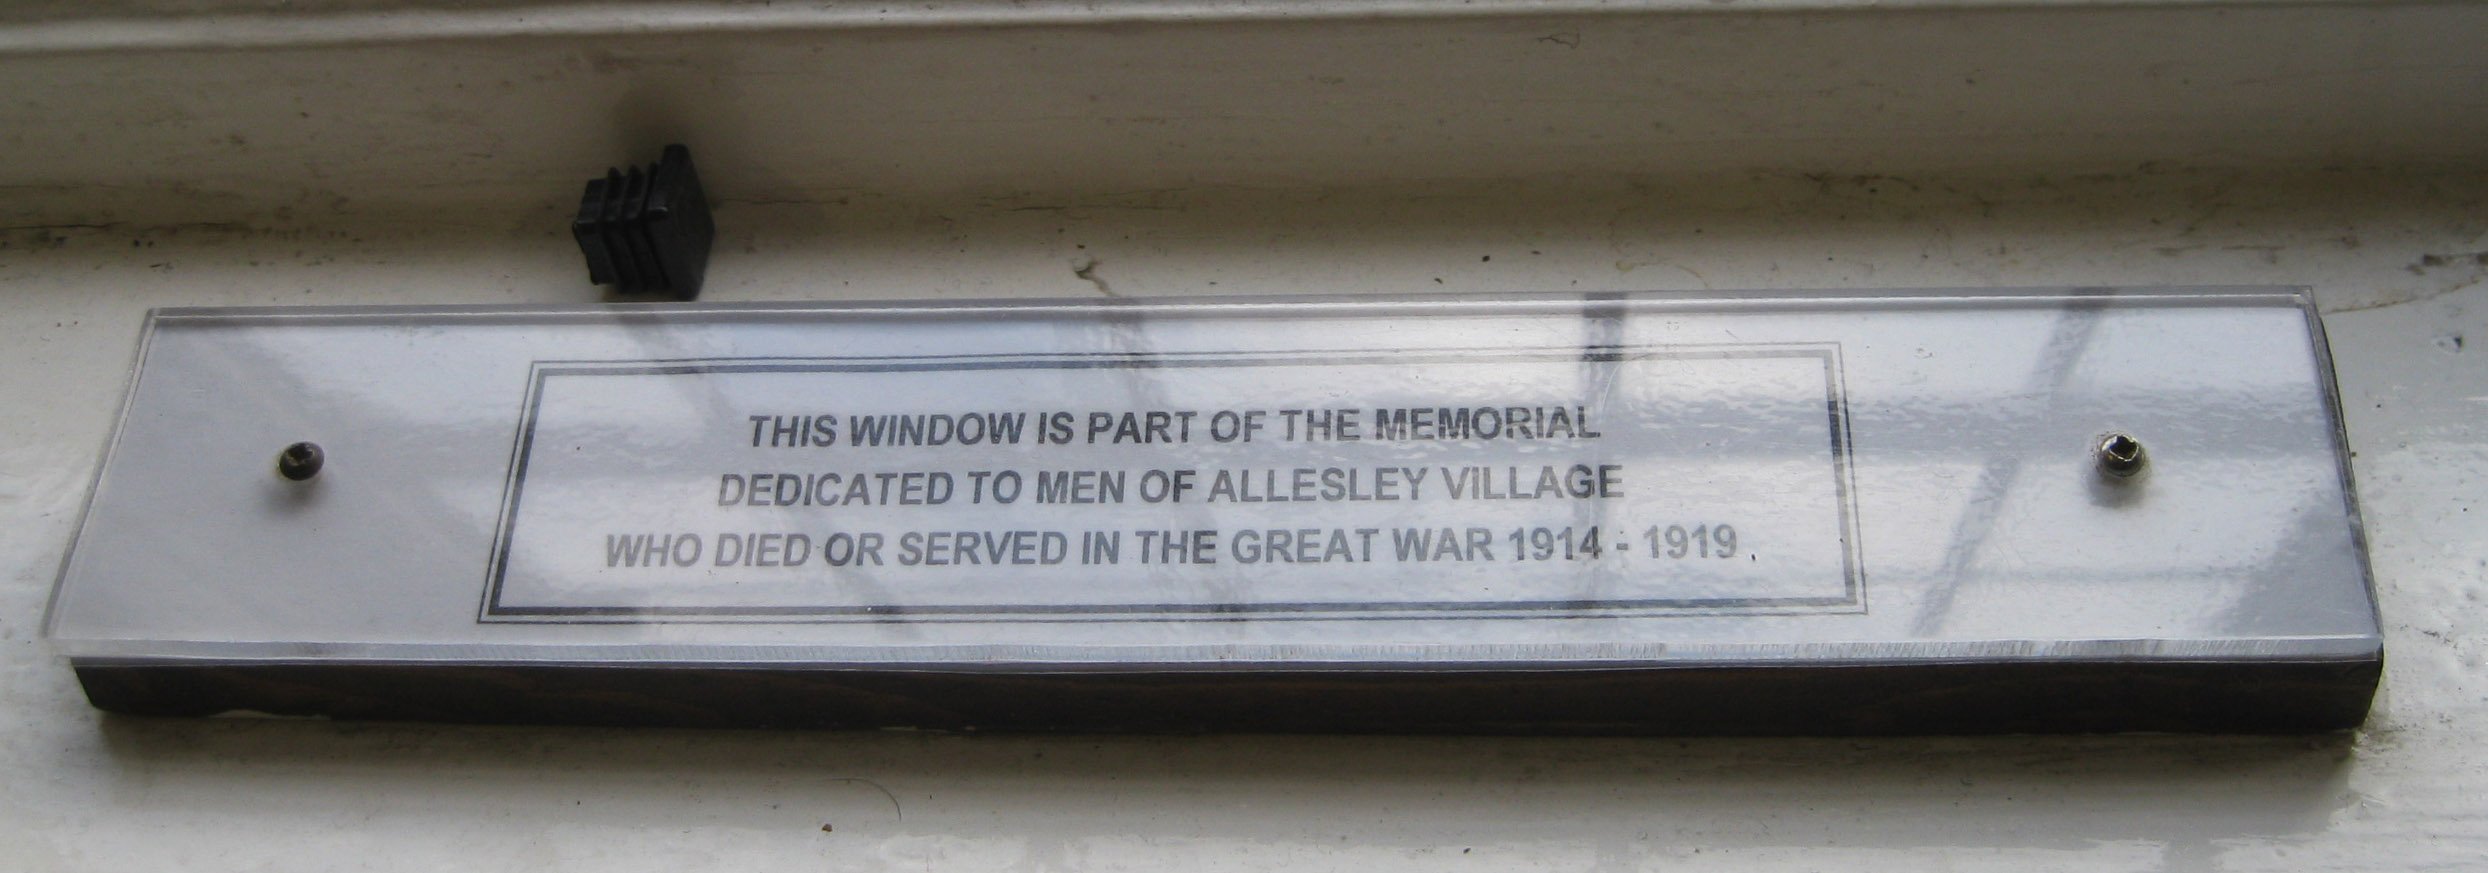 Plaque at Memorial window at Allesley Village Hall